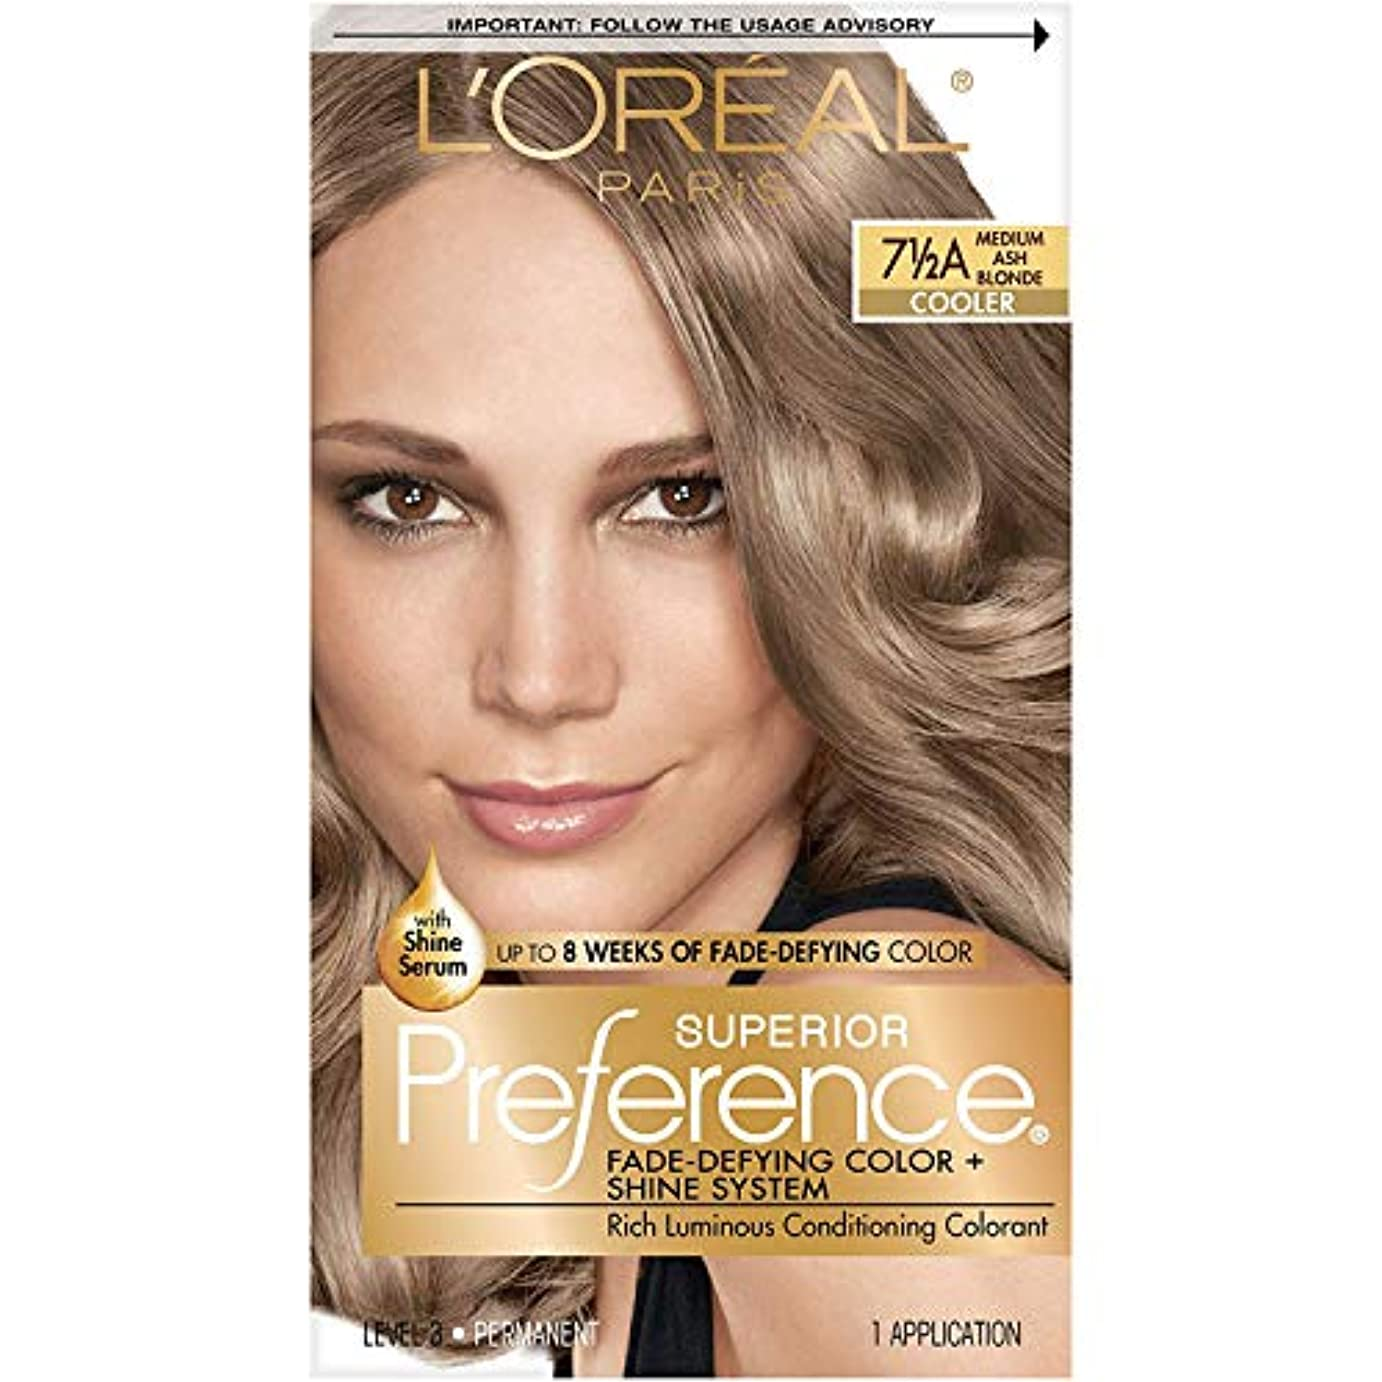 温度計役割アナロジー海外直送肘 LOreal Superior Preference Hair Color Medium Ash Blonde, Medium Ash Blonde 1 each